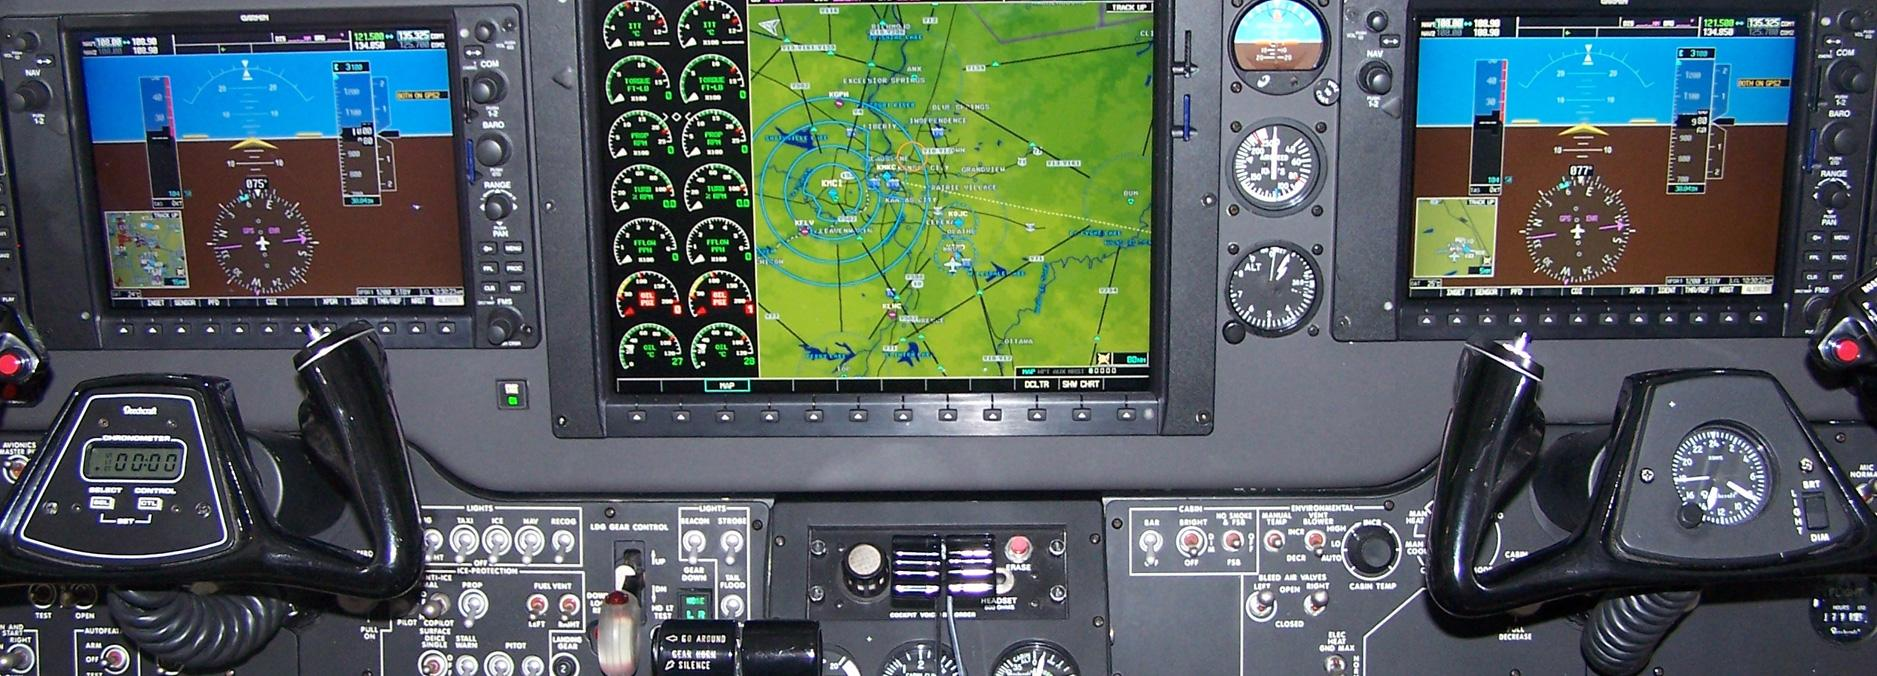 FAA Certification for Beechcraft C90 G1000 Integrated Flight Deck Project